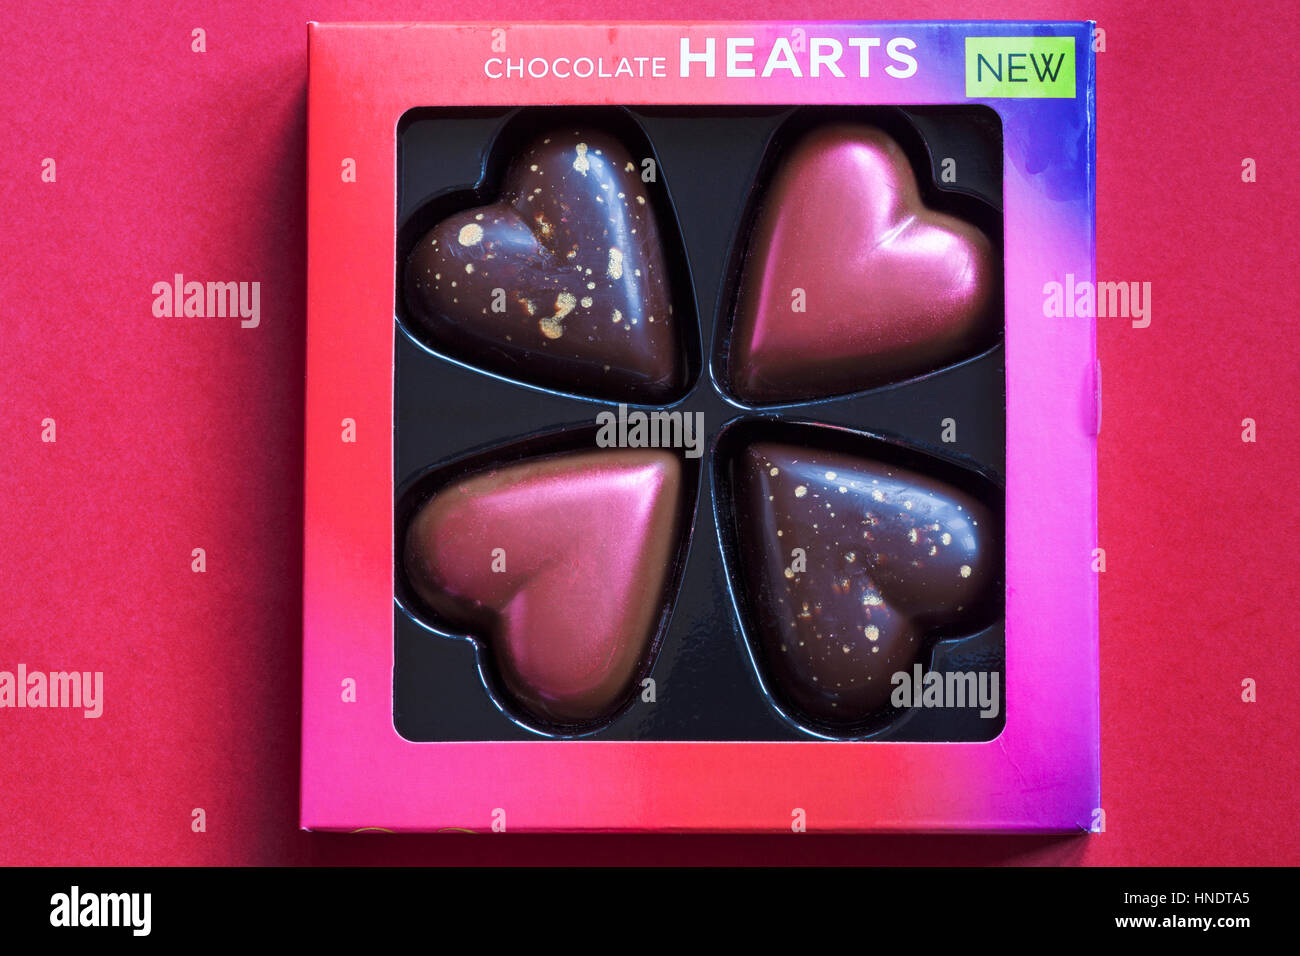 Box Of M S Chocolate Hearts For Valentines Day With Milk Dulce De